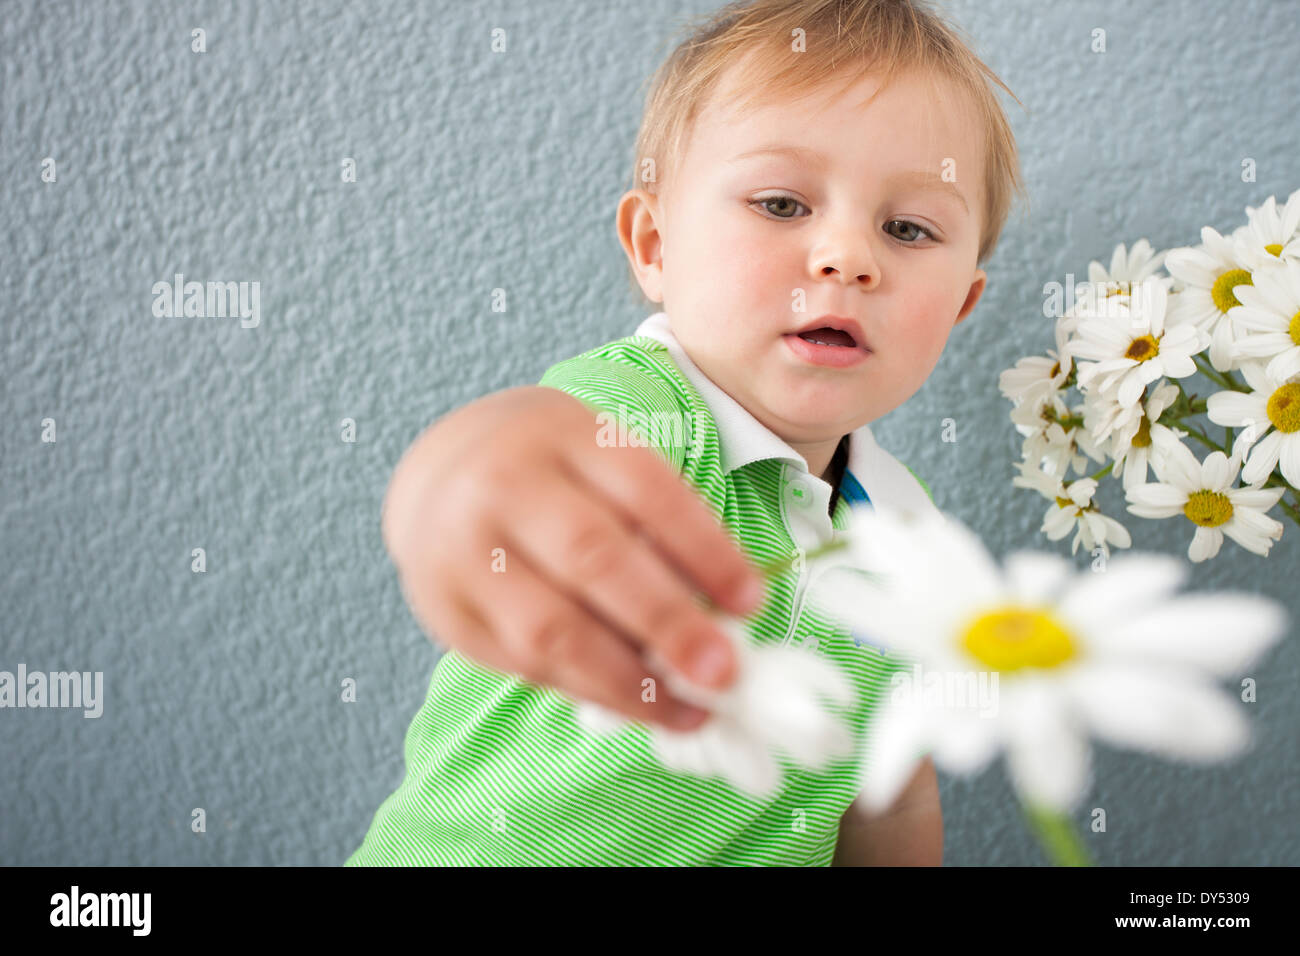 Baby boy playing with flowers - Stock Image